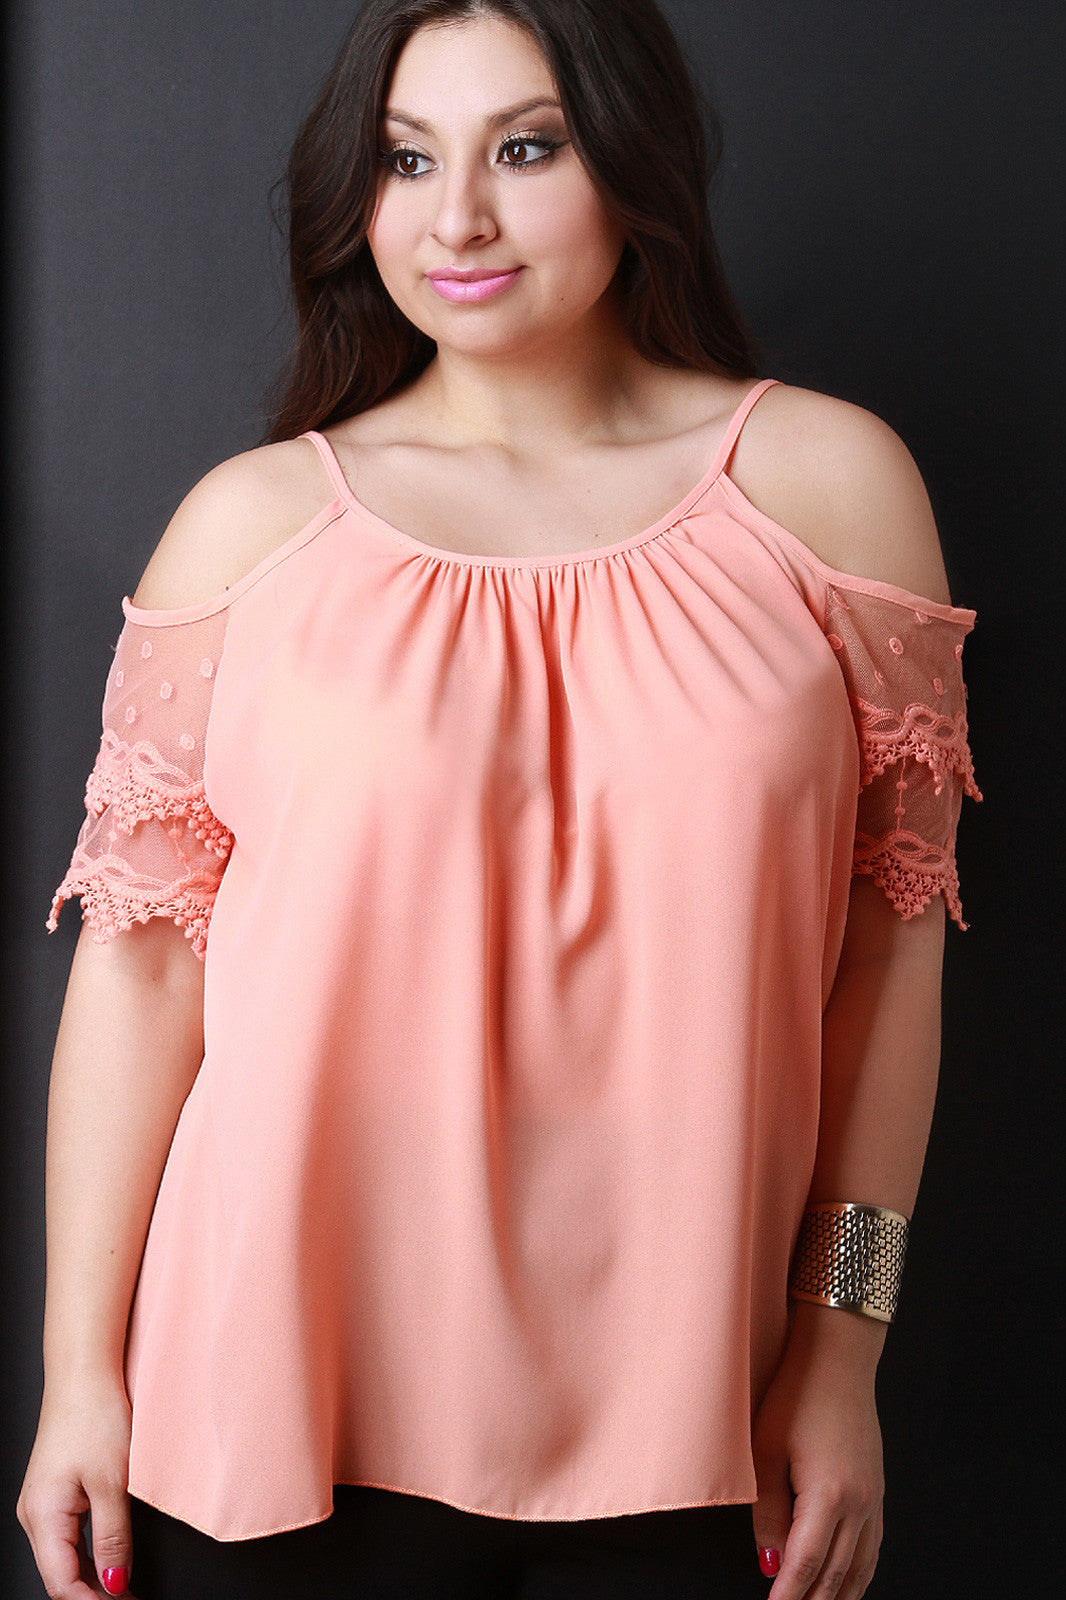 Lace Short Sleeves Cold Shoulder Top - Thick 'N' Curvy Shop - 1